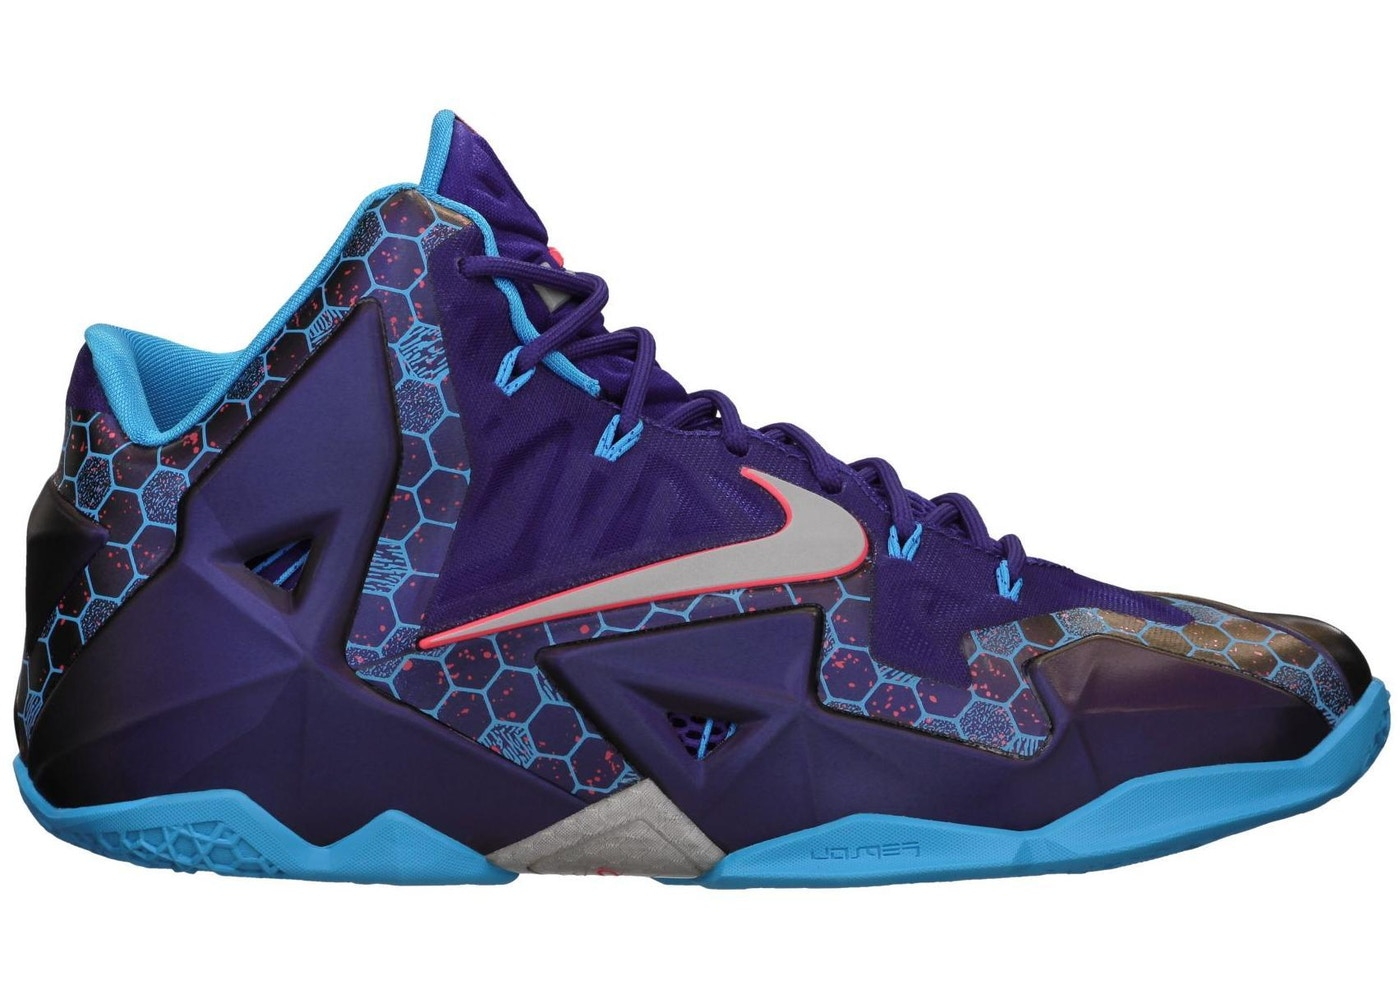 bd0f567f038 Nike LeBron 11 Shoes - Total Sold